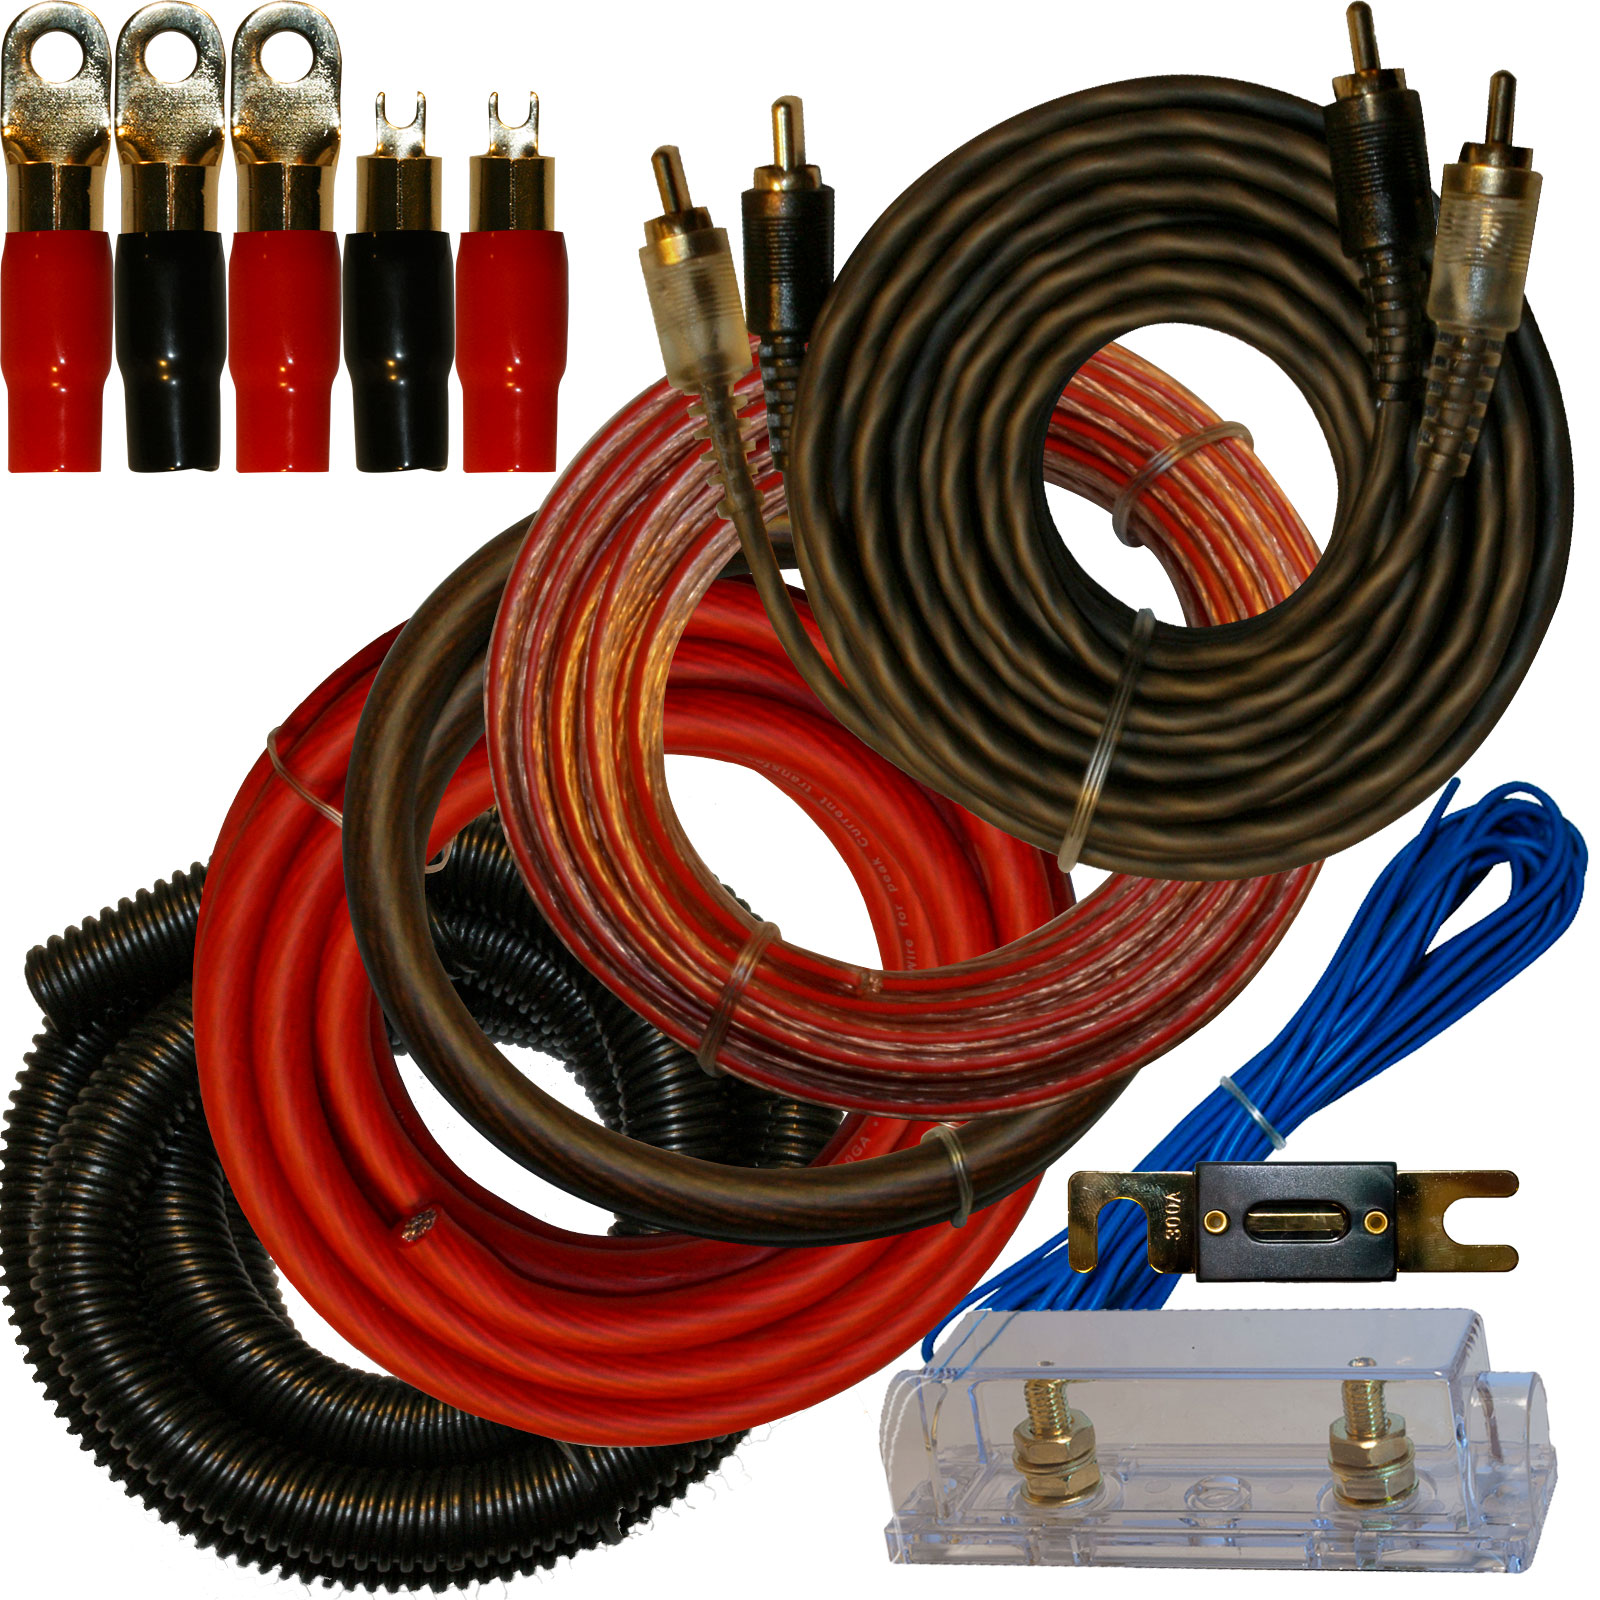 0 Gauge Amp Kit for Amplifier Install Wiring Complete 1/0 Ga Cables 4500W